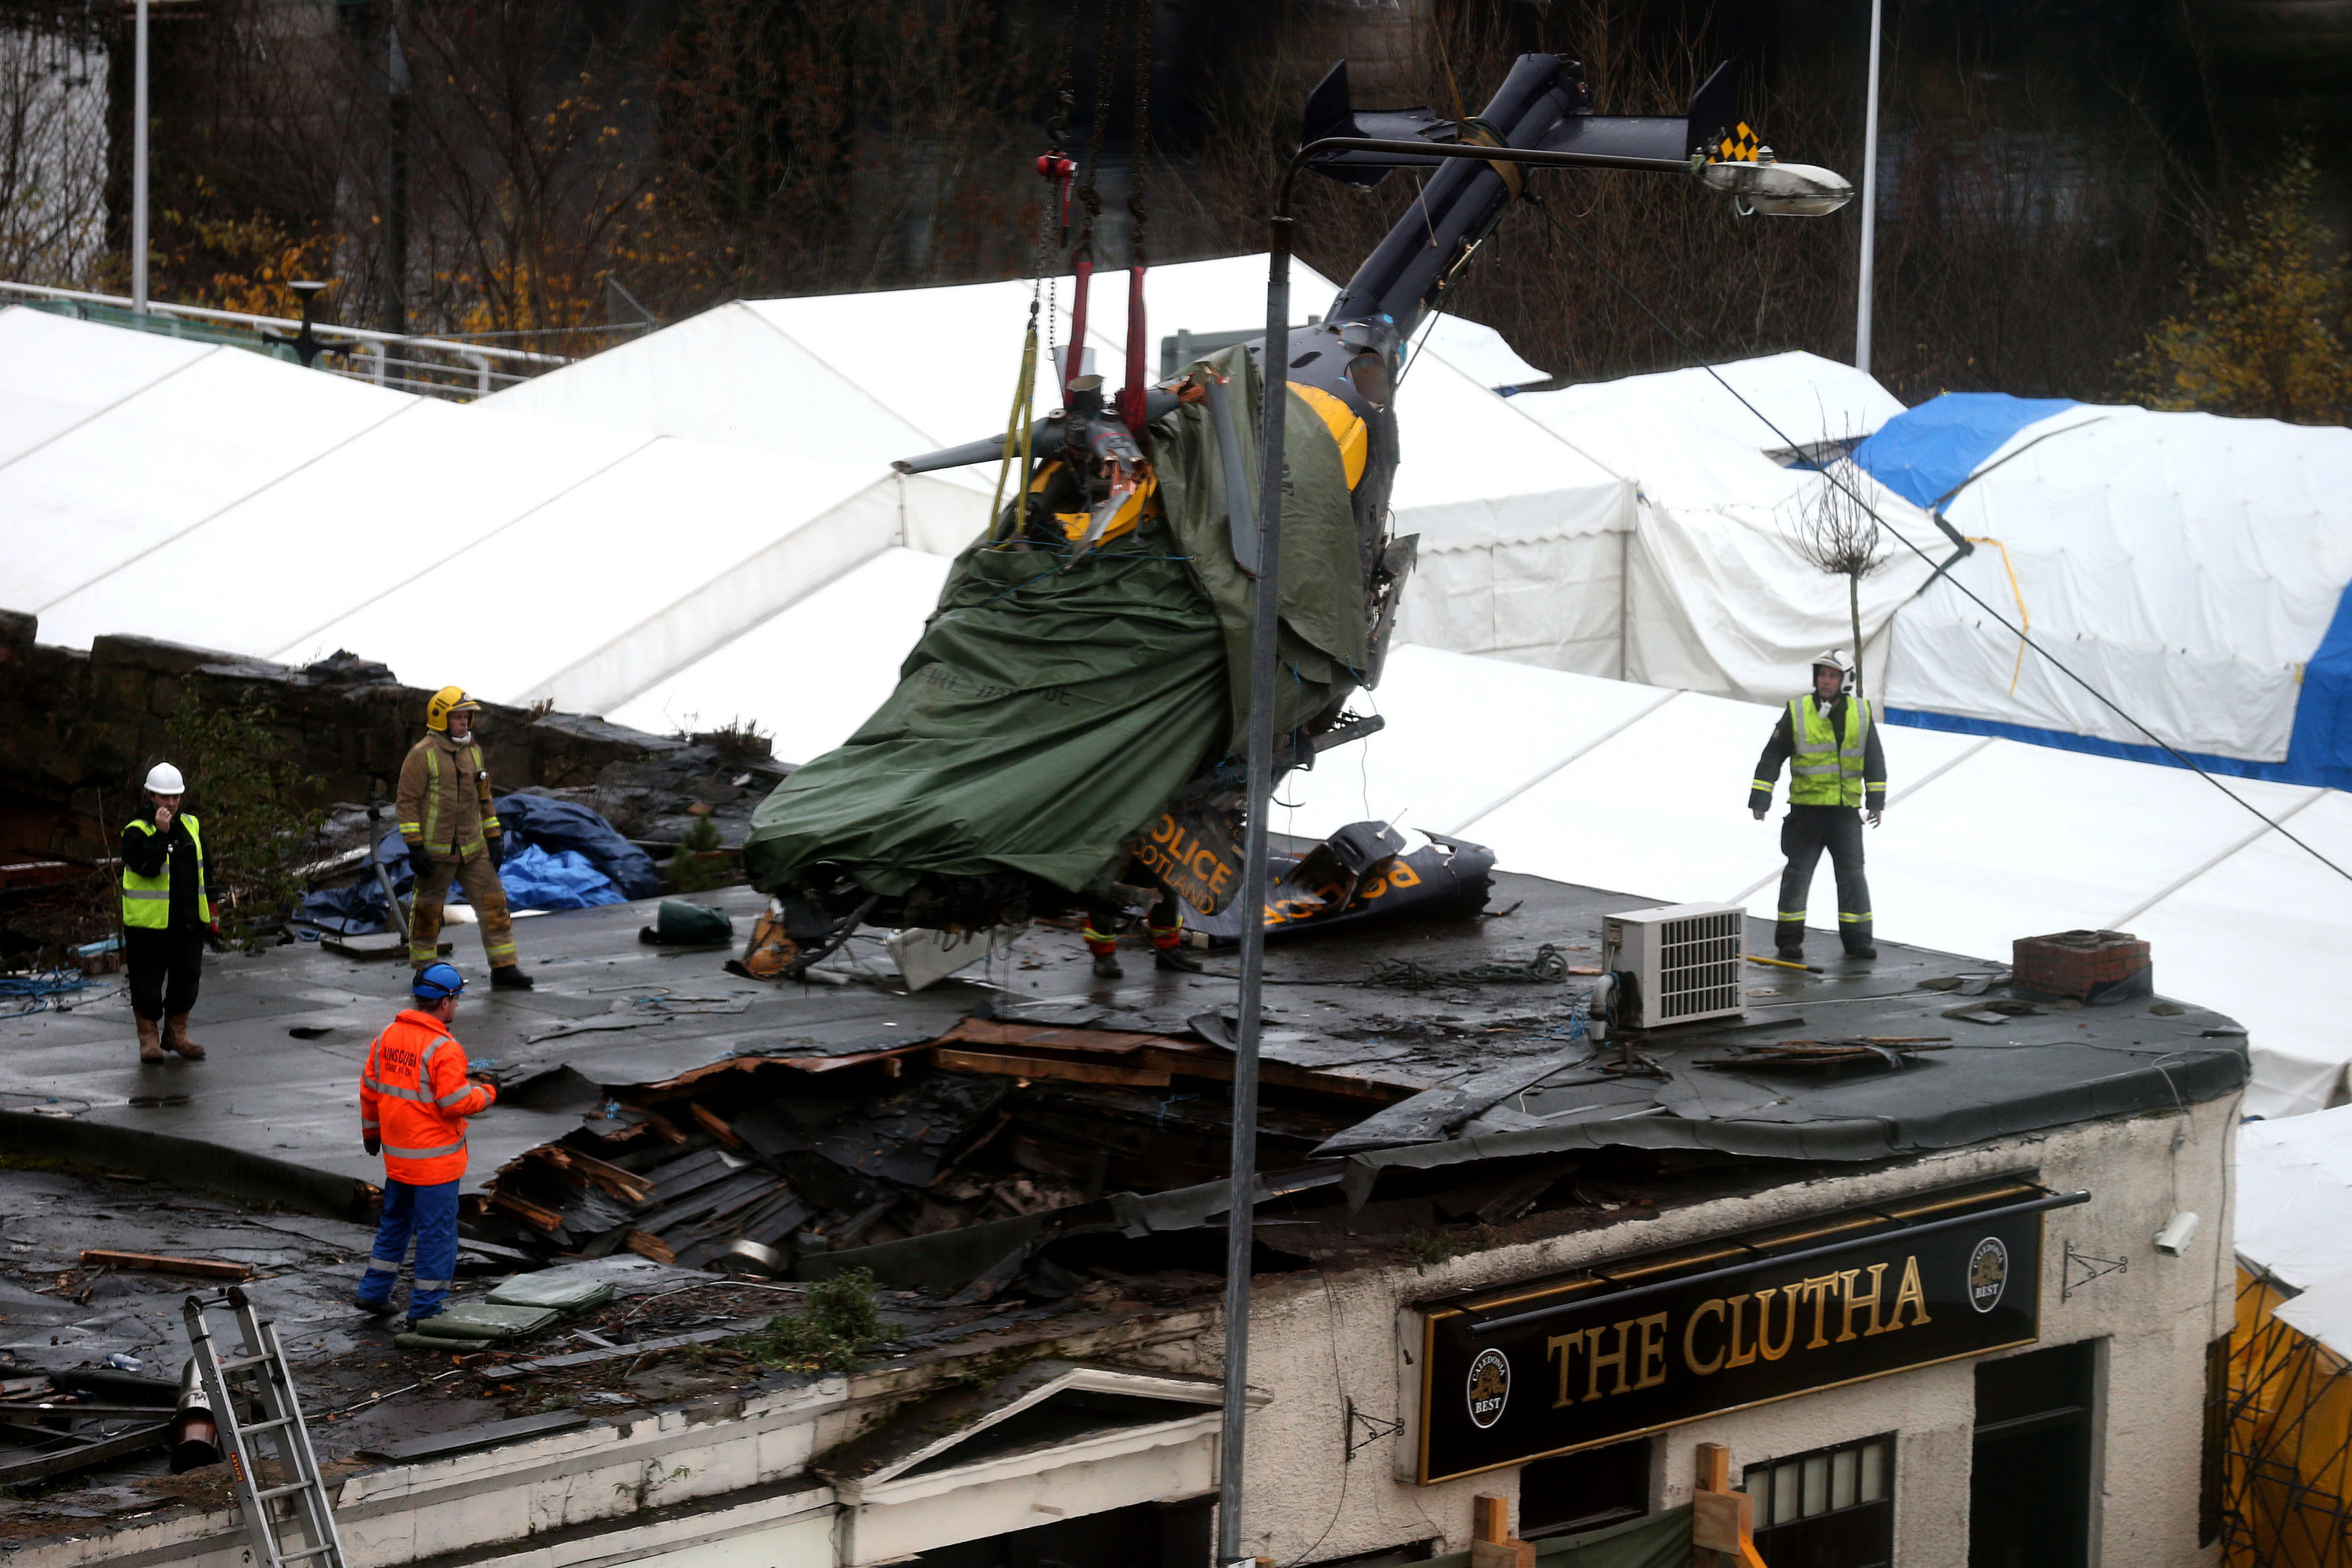 The wreckage of the police three-tonne Eurocopter being lifted from the Clutha Vaults in Glasgow following the crash which killed at least nine people.